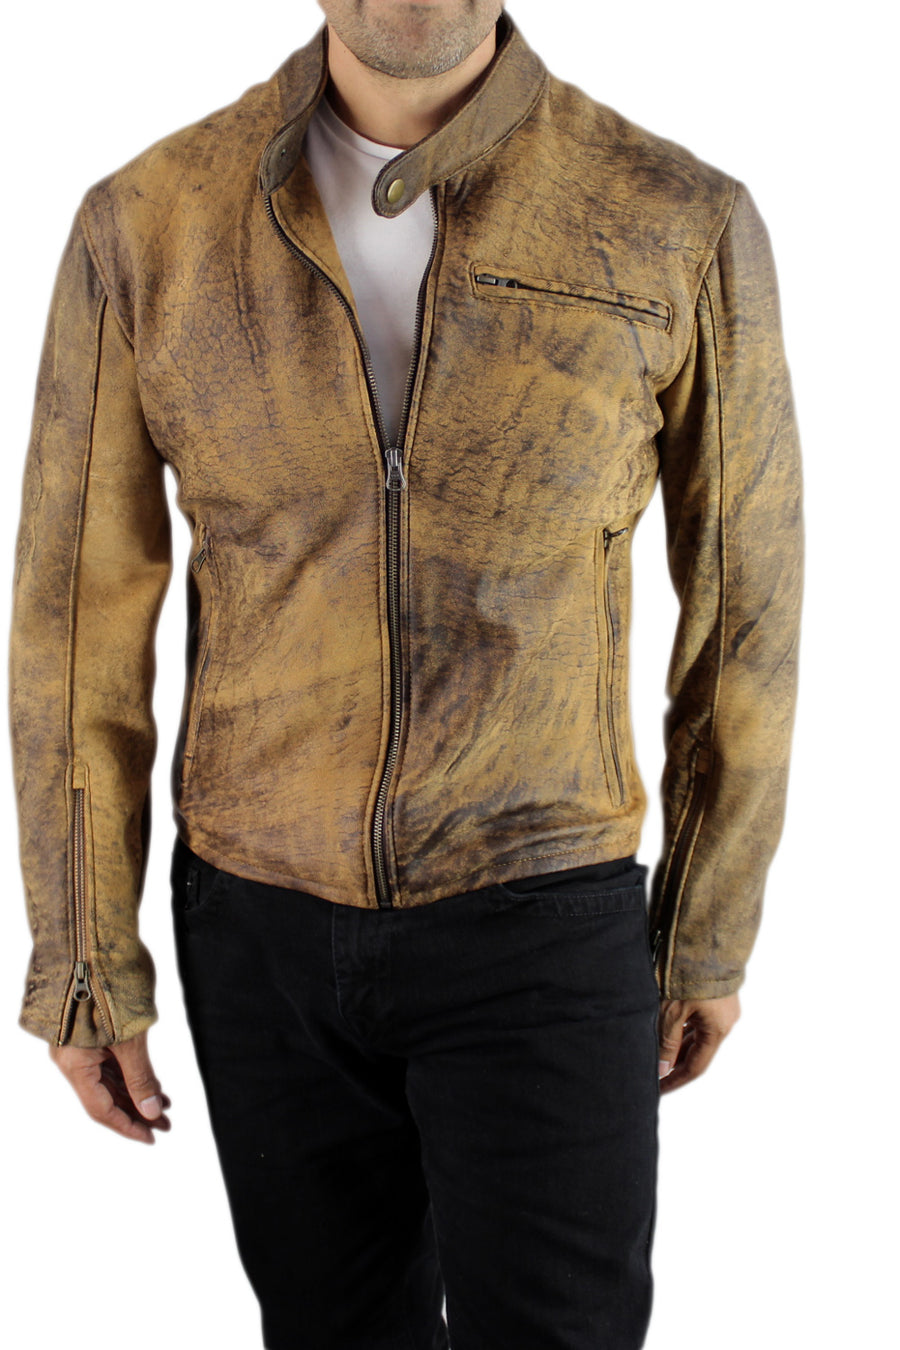 R79 Leather Jacket Full Ultra Distressed - PDCollection Leatherwear - Online Shop